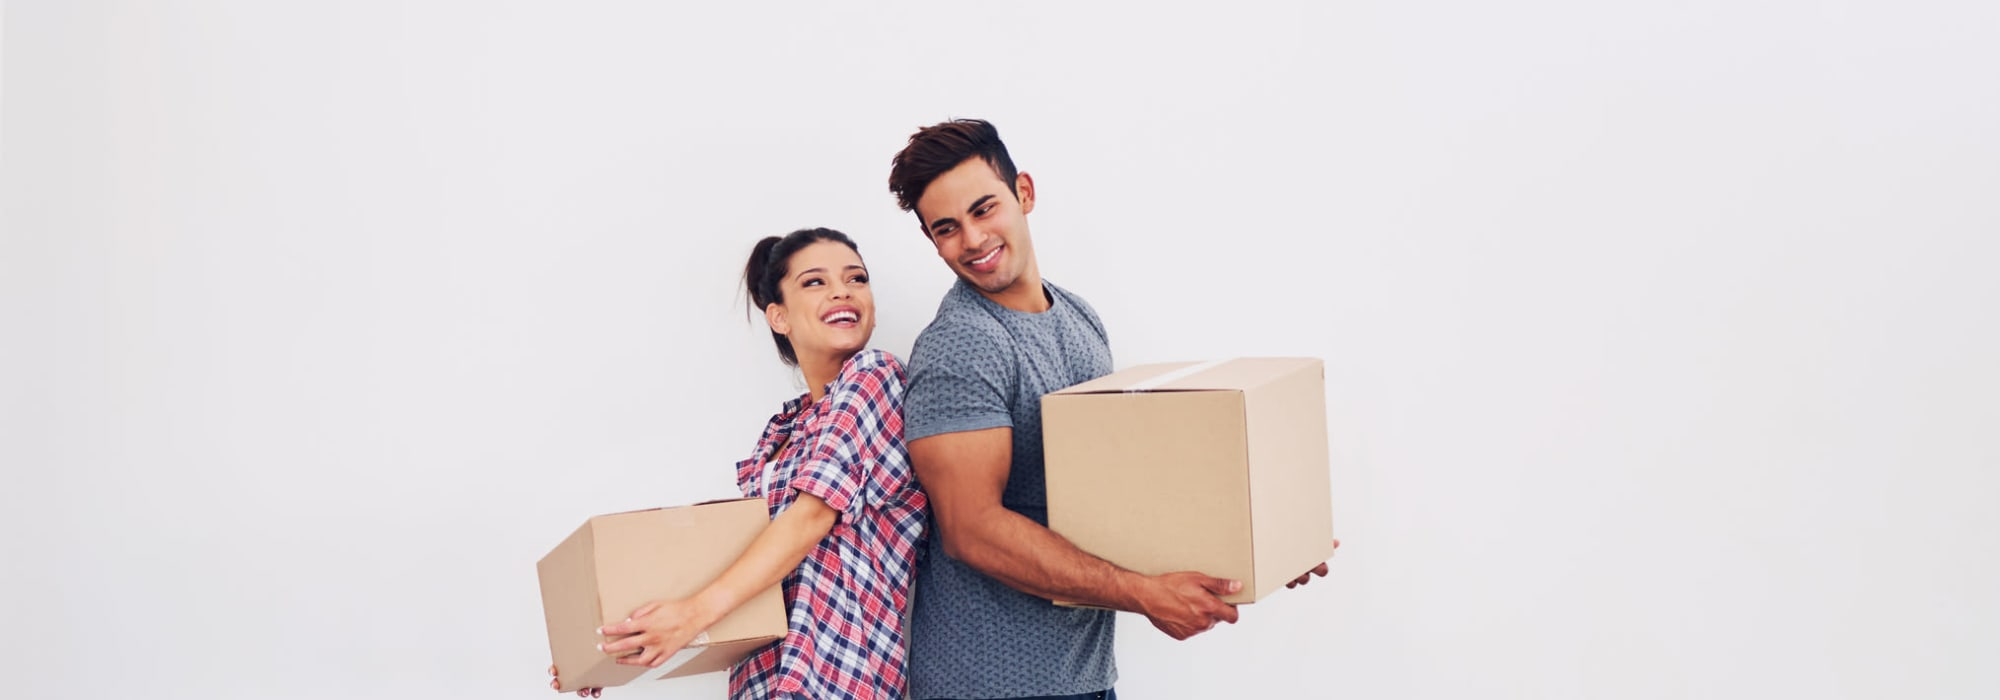 Couple holding packing boxes Self Storage Plus in Middle River, Maryland.